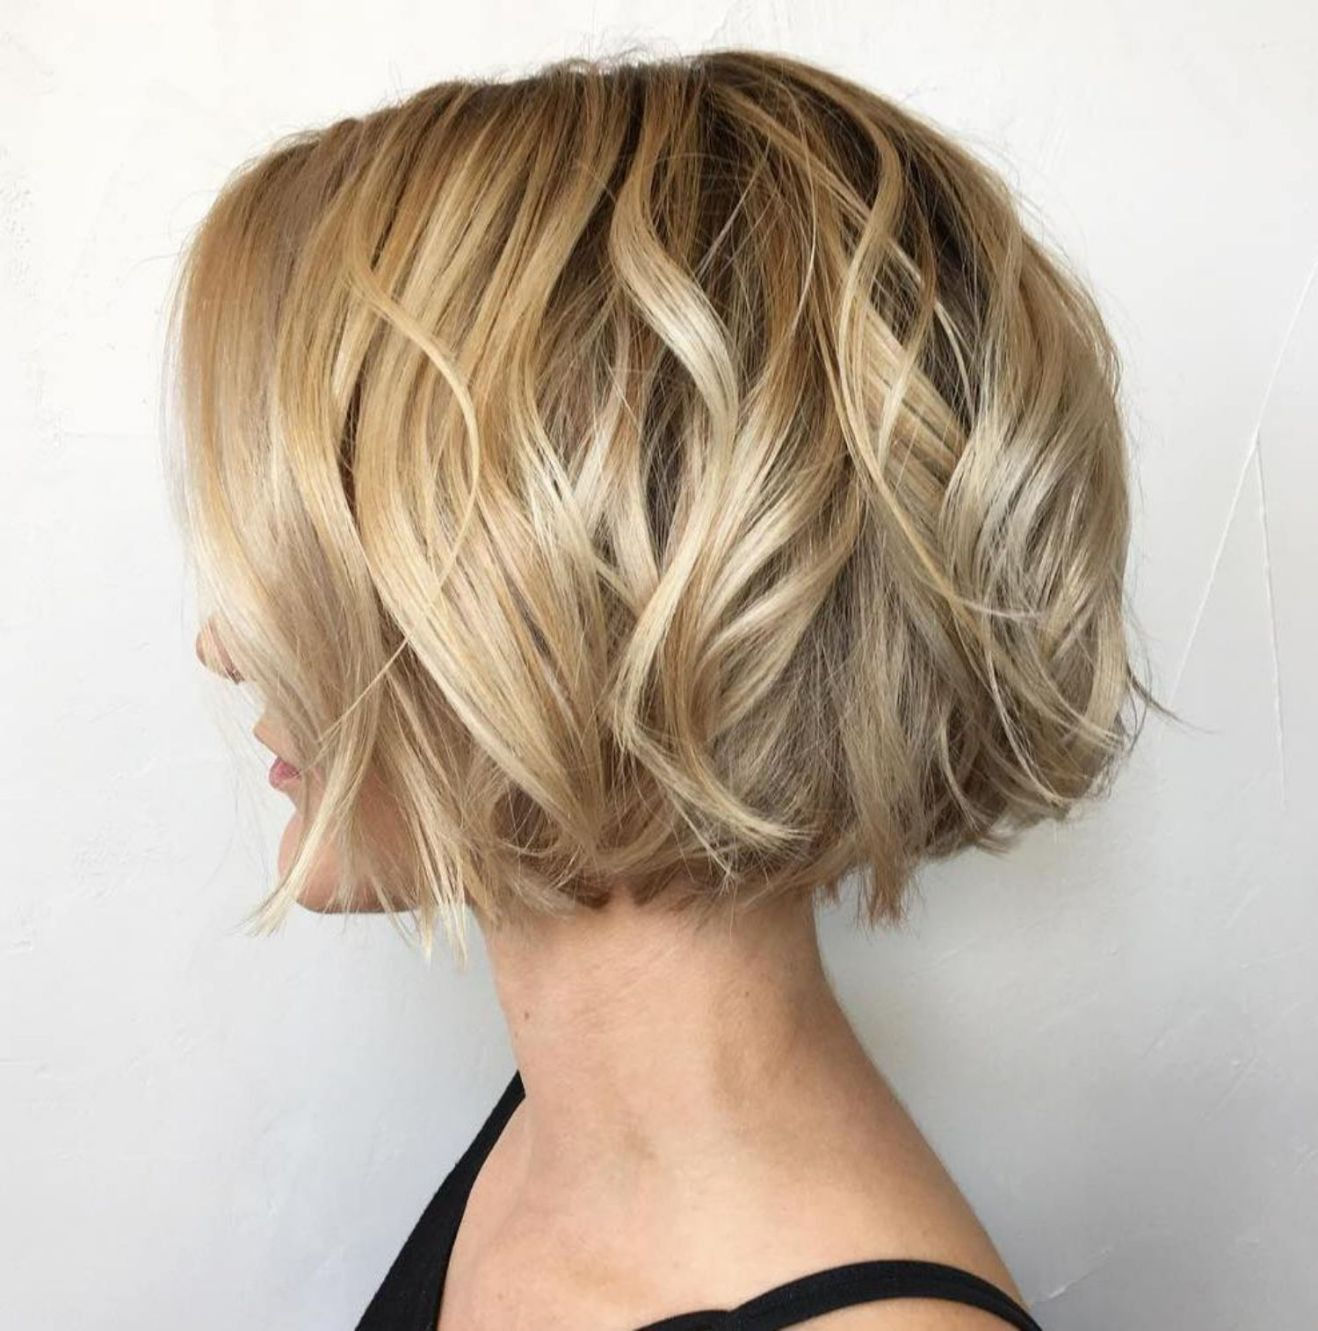 99 Wonderful Mind Blowing Short Curly Haircuts For Fine Hair 2020 In 2020 Wavy Bob Hairstyles Fine Hair Thick Hair Styles